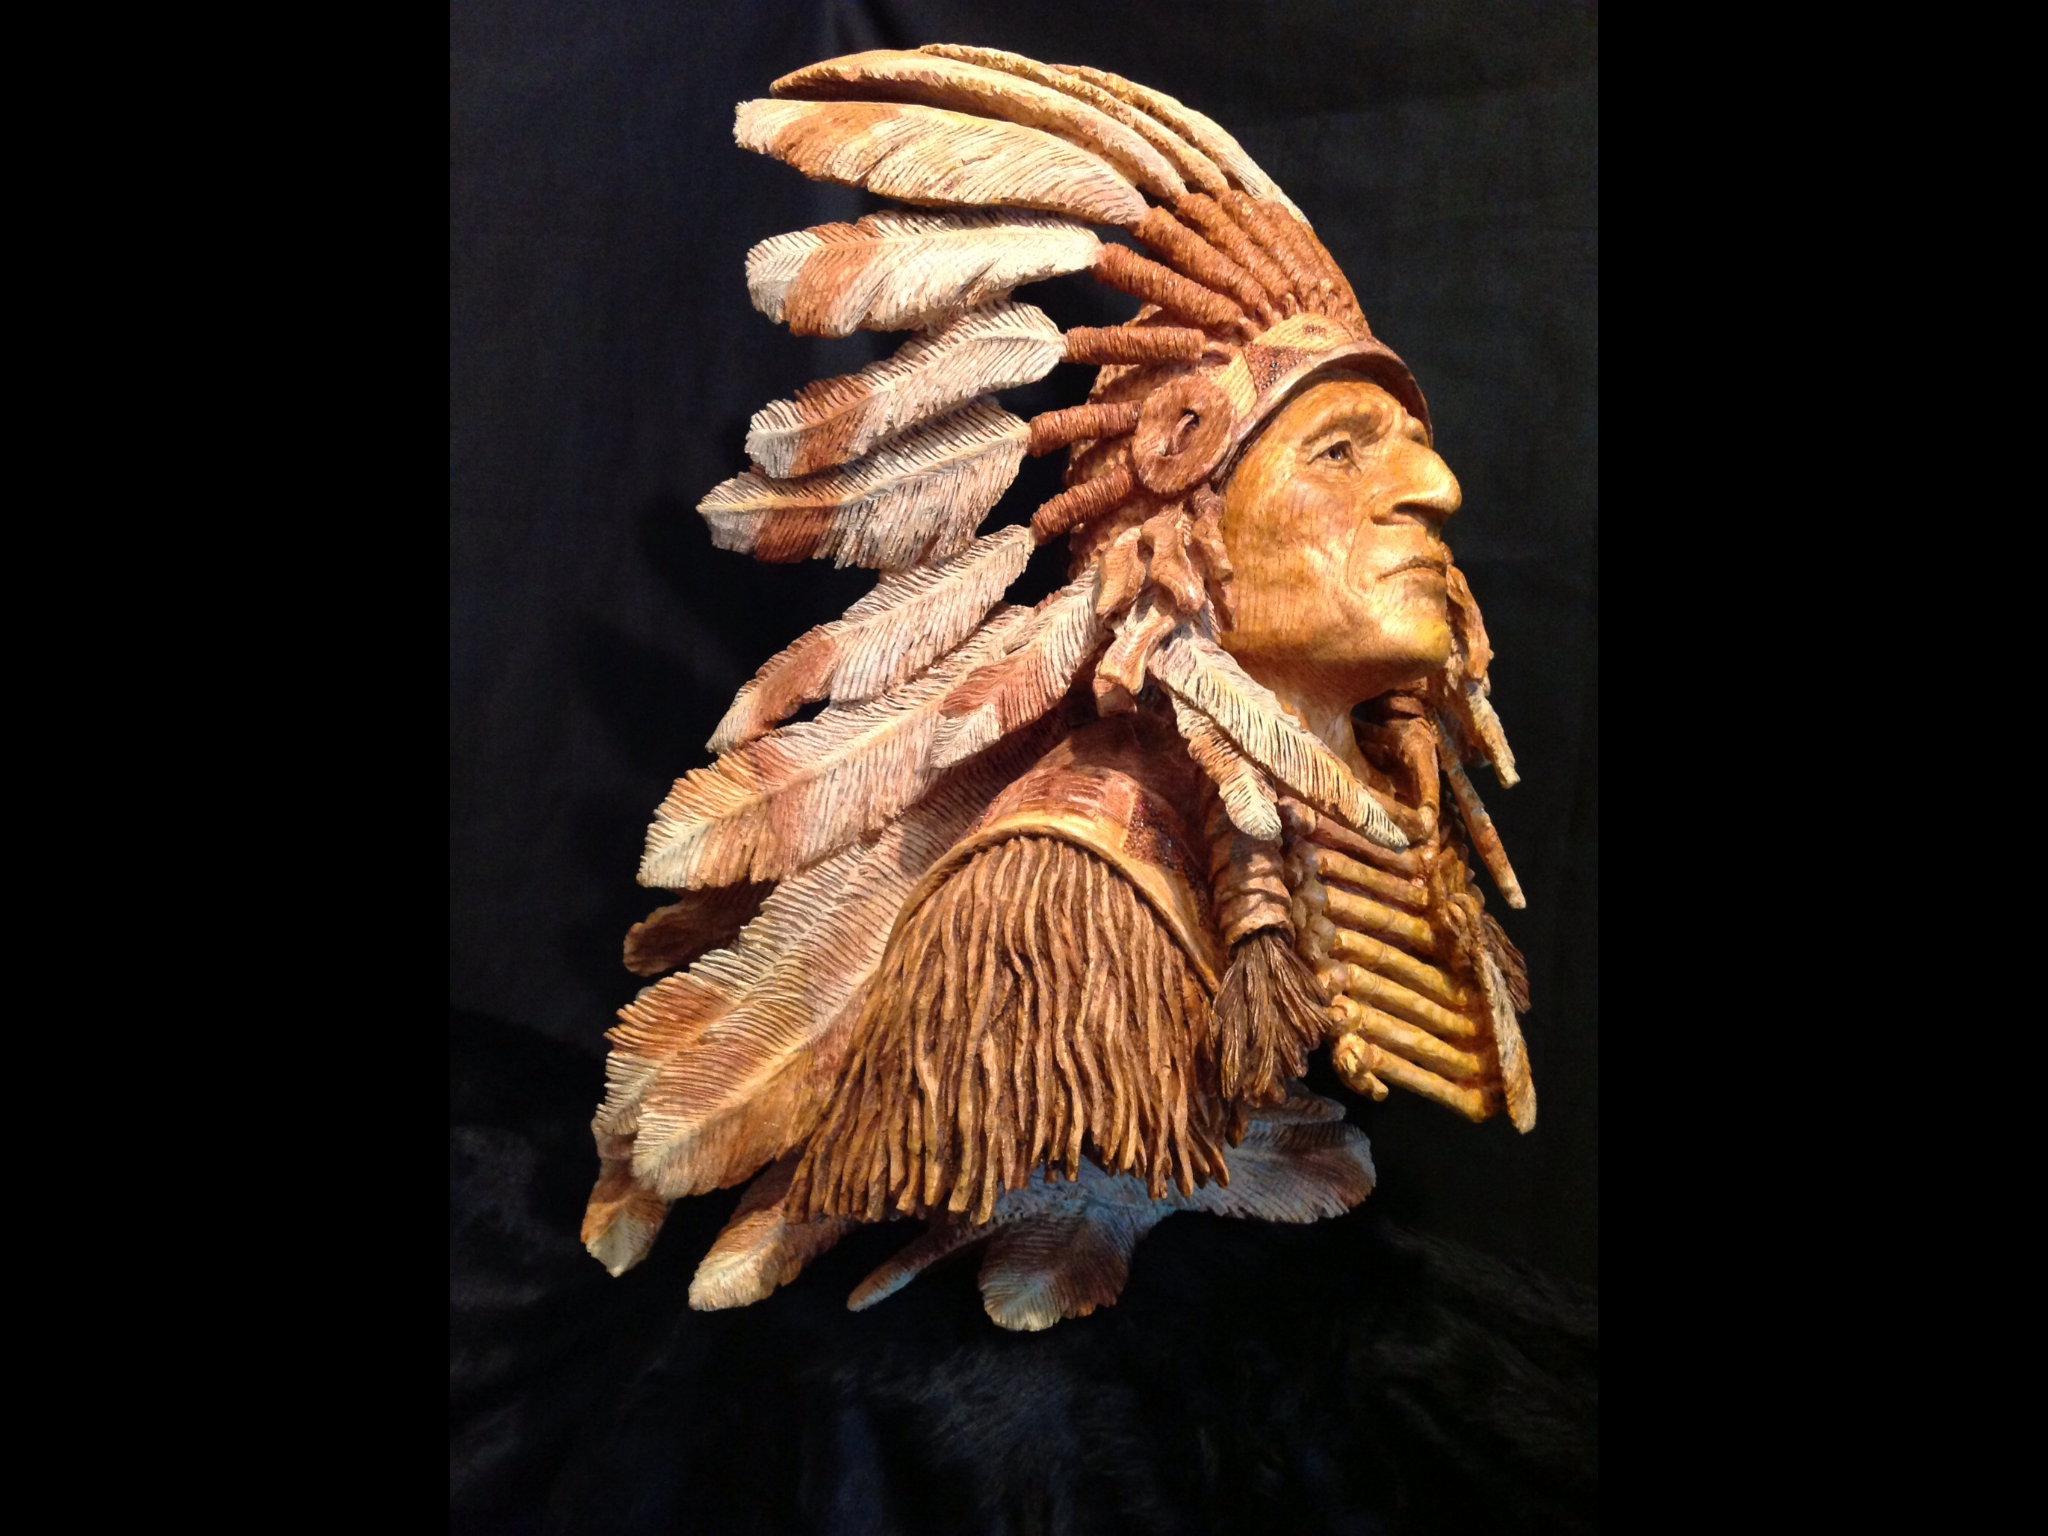 'PRIDE OF THE SIOUX' INDIAN CHIEF